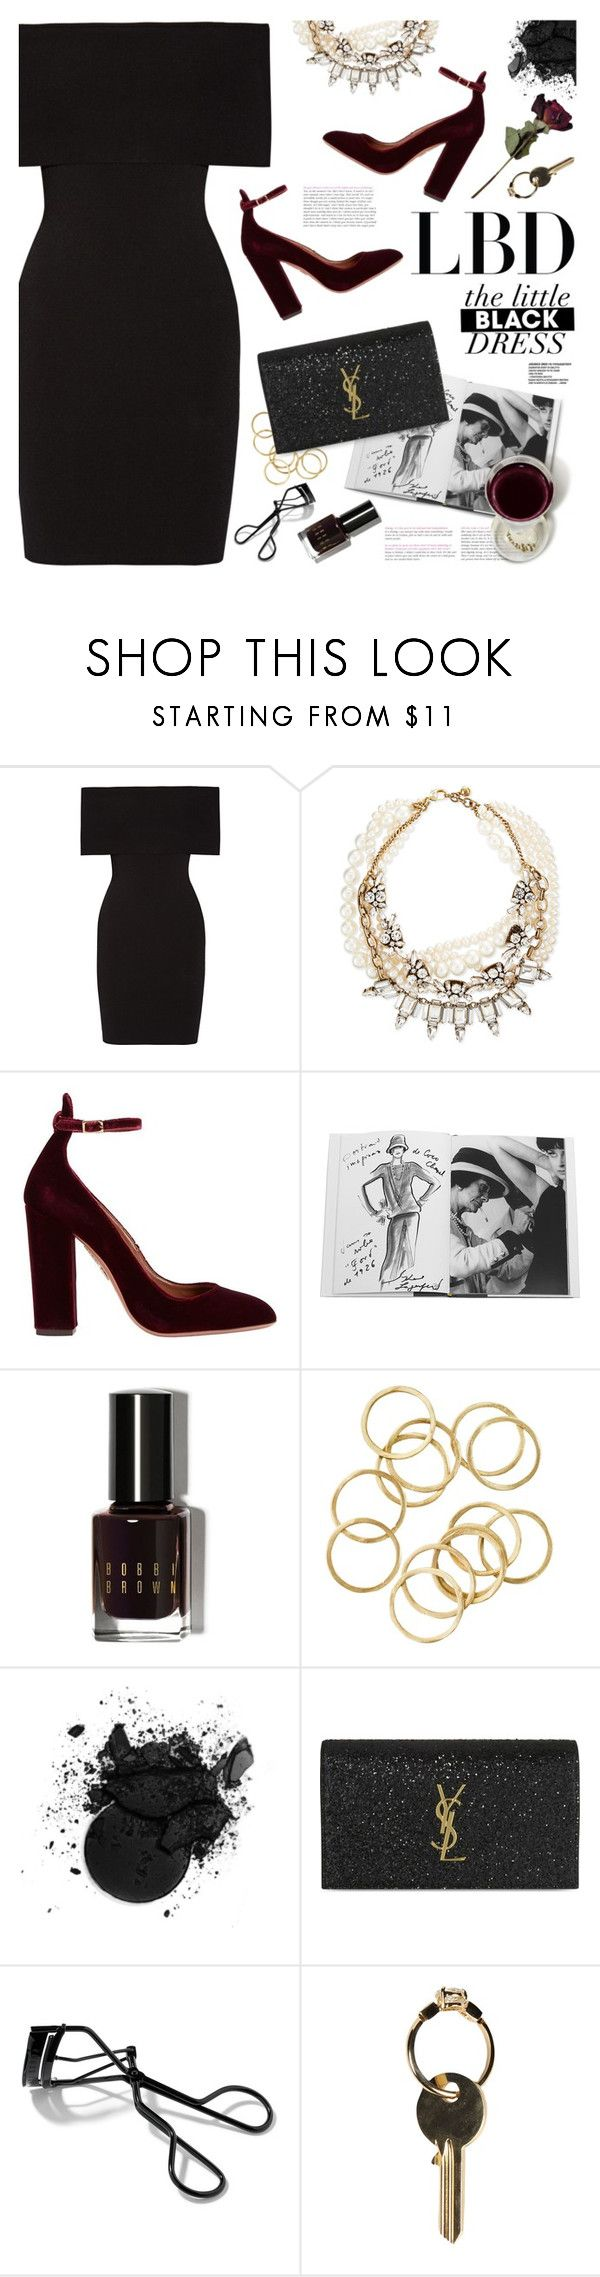 """little black dress"" by jesuisunlapin ❤ liked on Polyvore featuring Rosetta Getty, Lulu Frost, Aquazzura, Assouline Publishing, Bobbi Brown Cosmetics, Yves Saint Laurent and Maison Margiela"